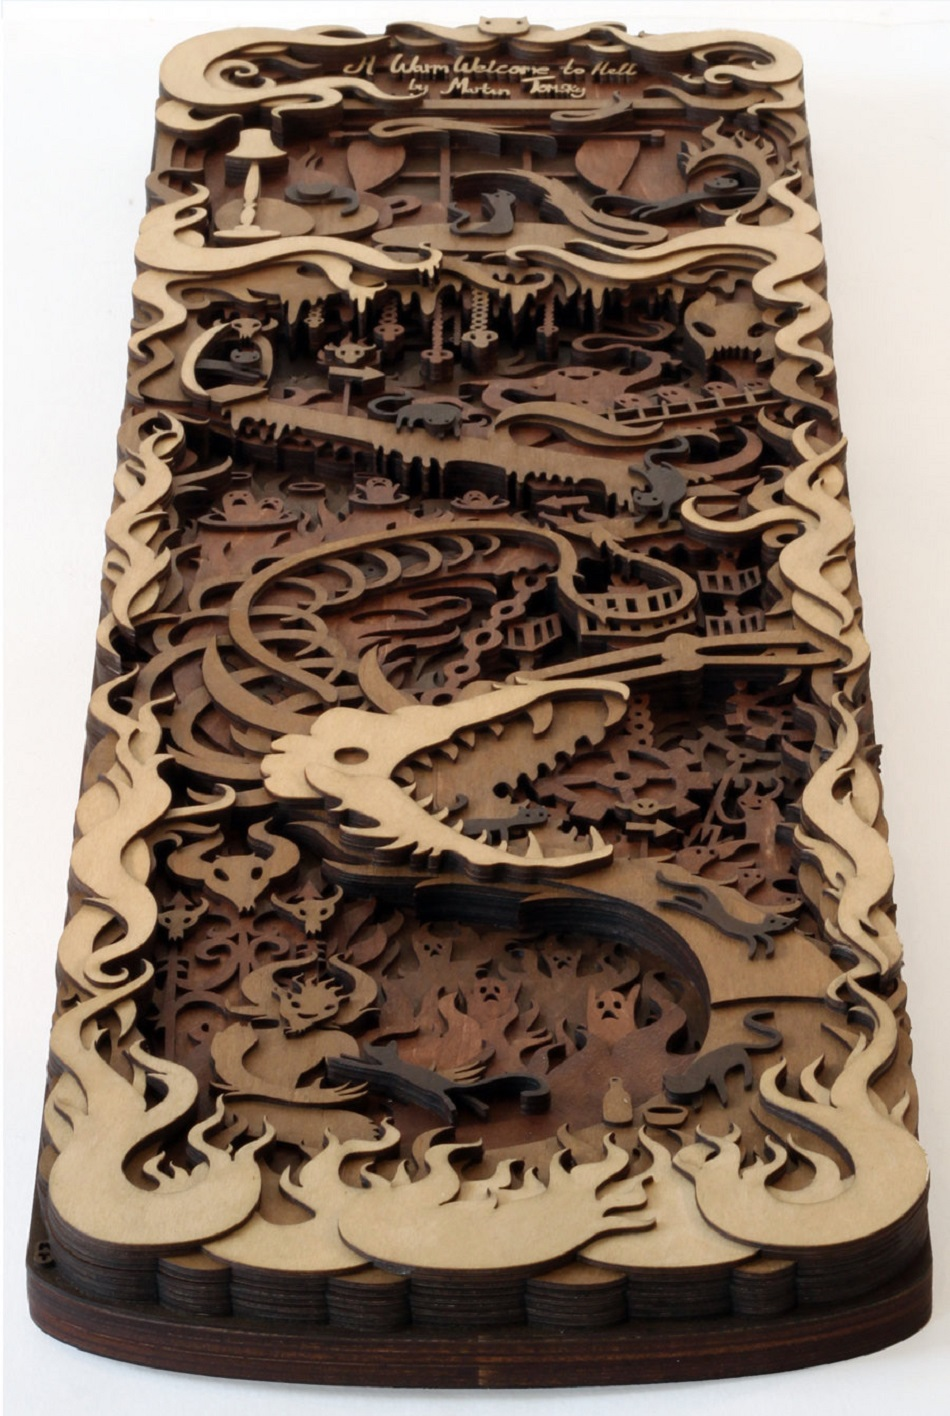 Martin Tomsky laser cut wood -warm-welcome - Feature